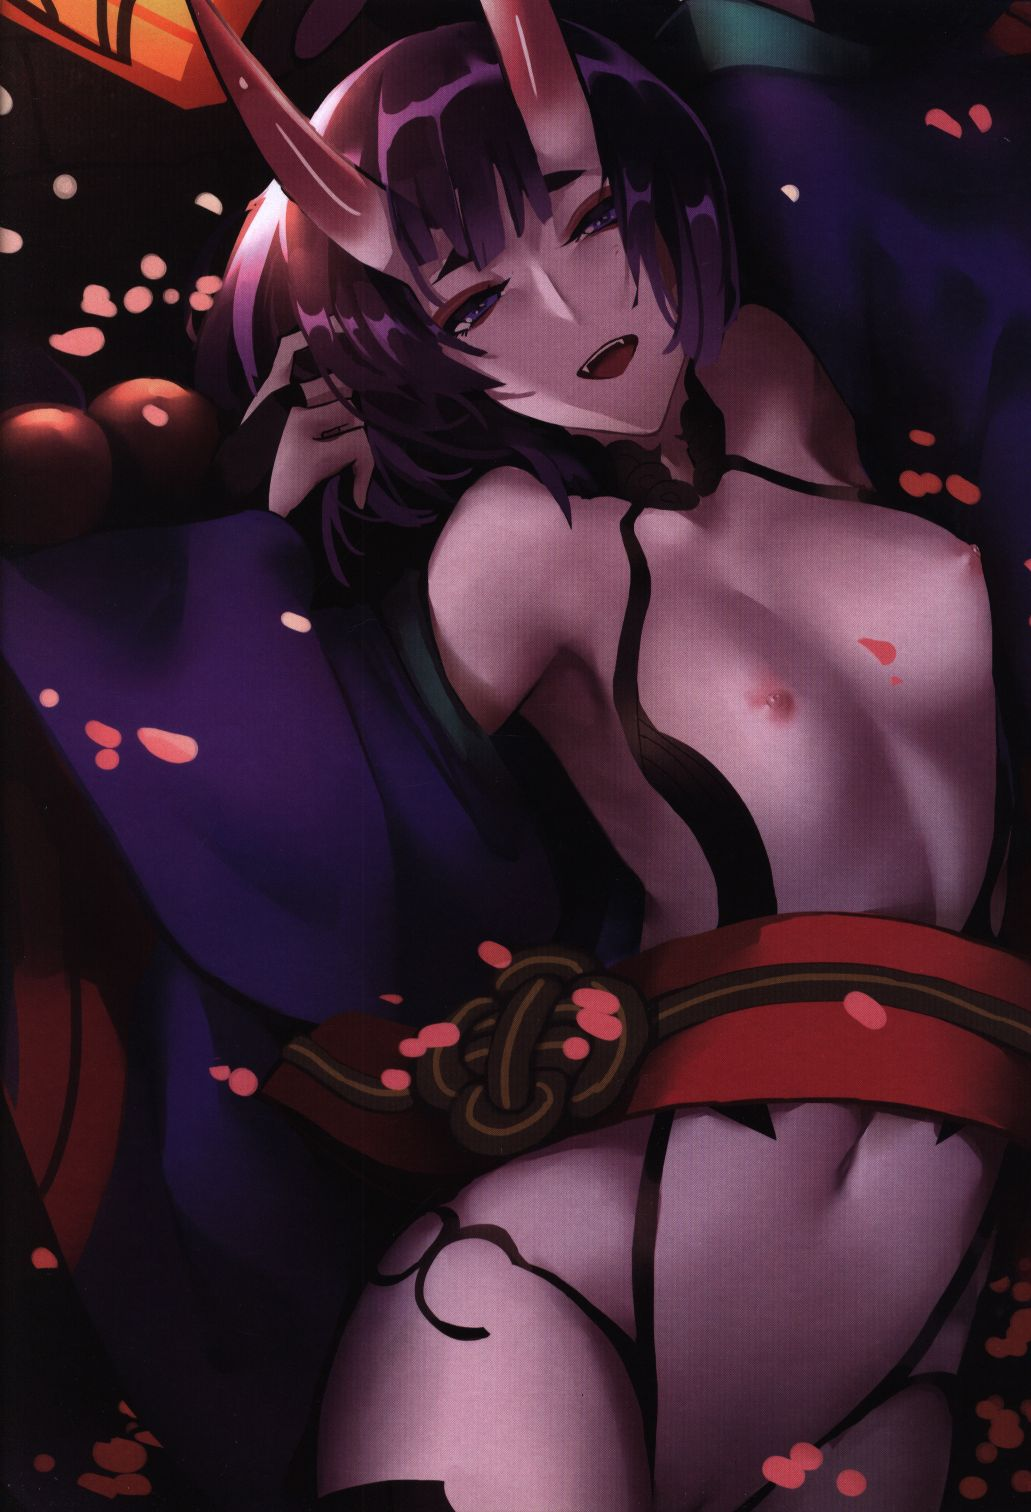 [Hentai] Doujinshi - Fate/Grand Order / Caster of Nightless City & Caster of Midrash (極楽の狂騒曲II) / TOHOORIN